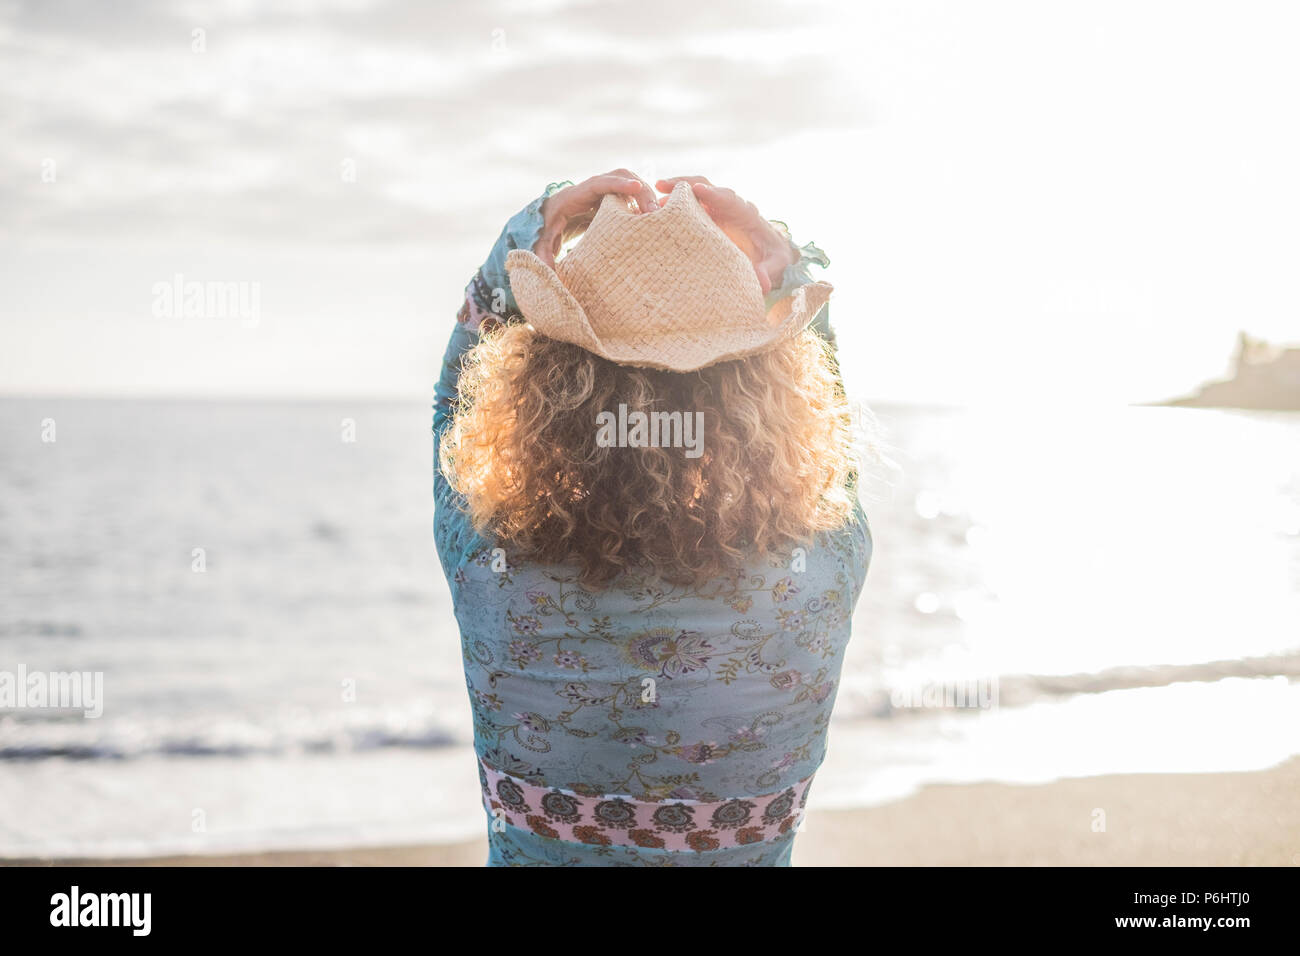 freedom young woman with cowboay hat in front of the ocean enjoying vacation and outdoor lifestyle. summer sunlight and waves and traveler spirit - Stock Image